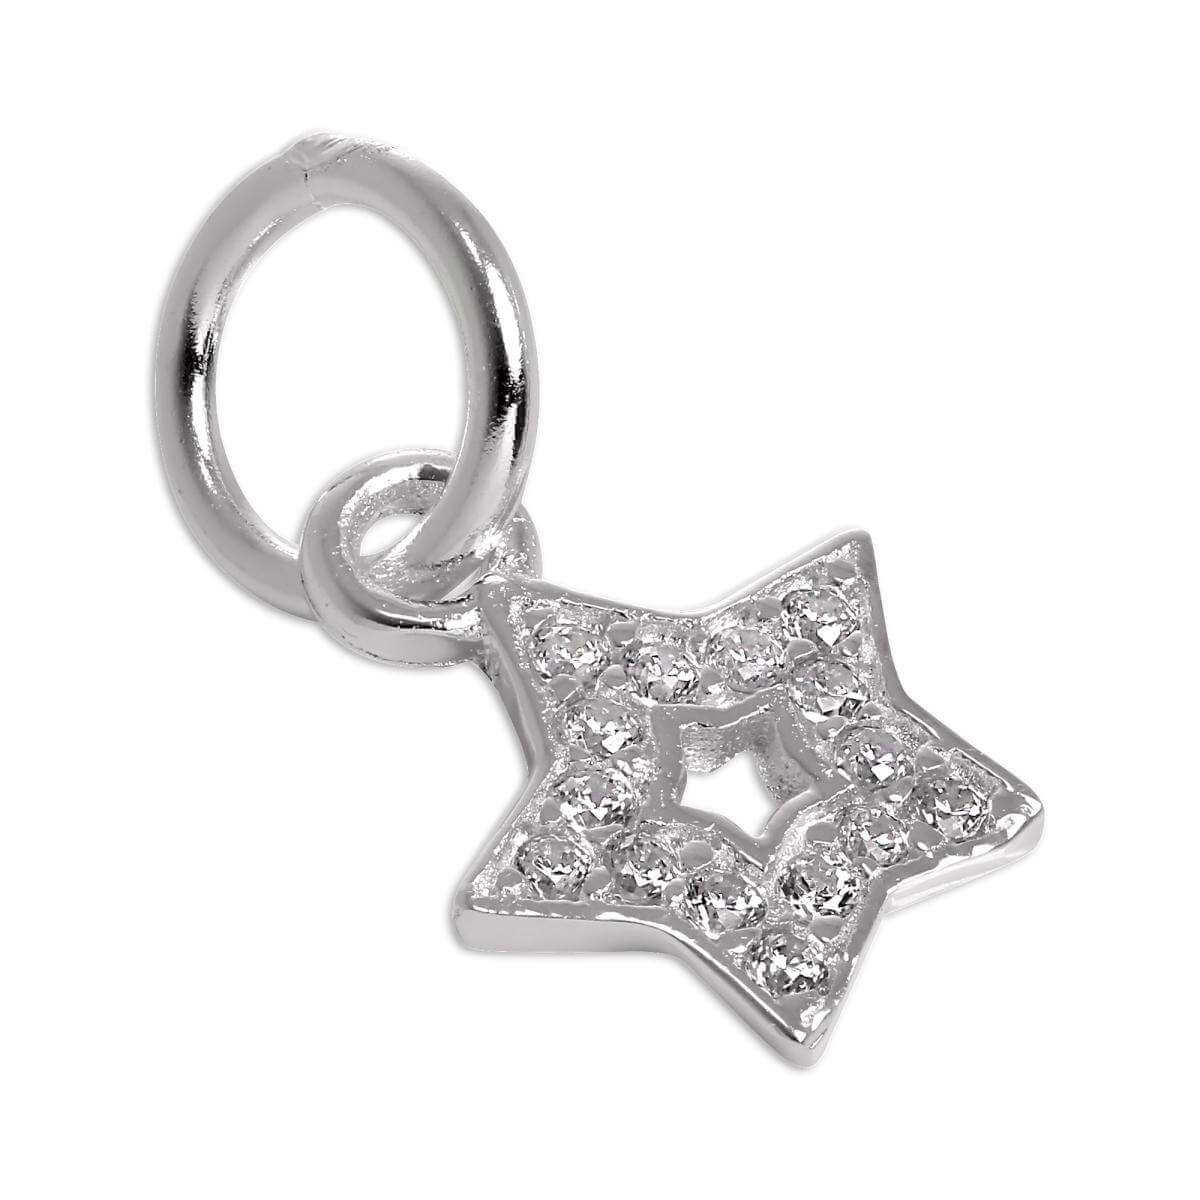 Small Sterling Silver CZ Crystal Encrusted Star Charm